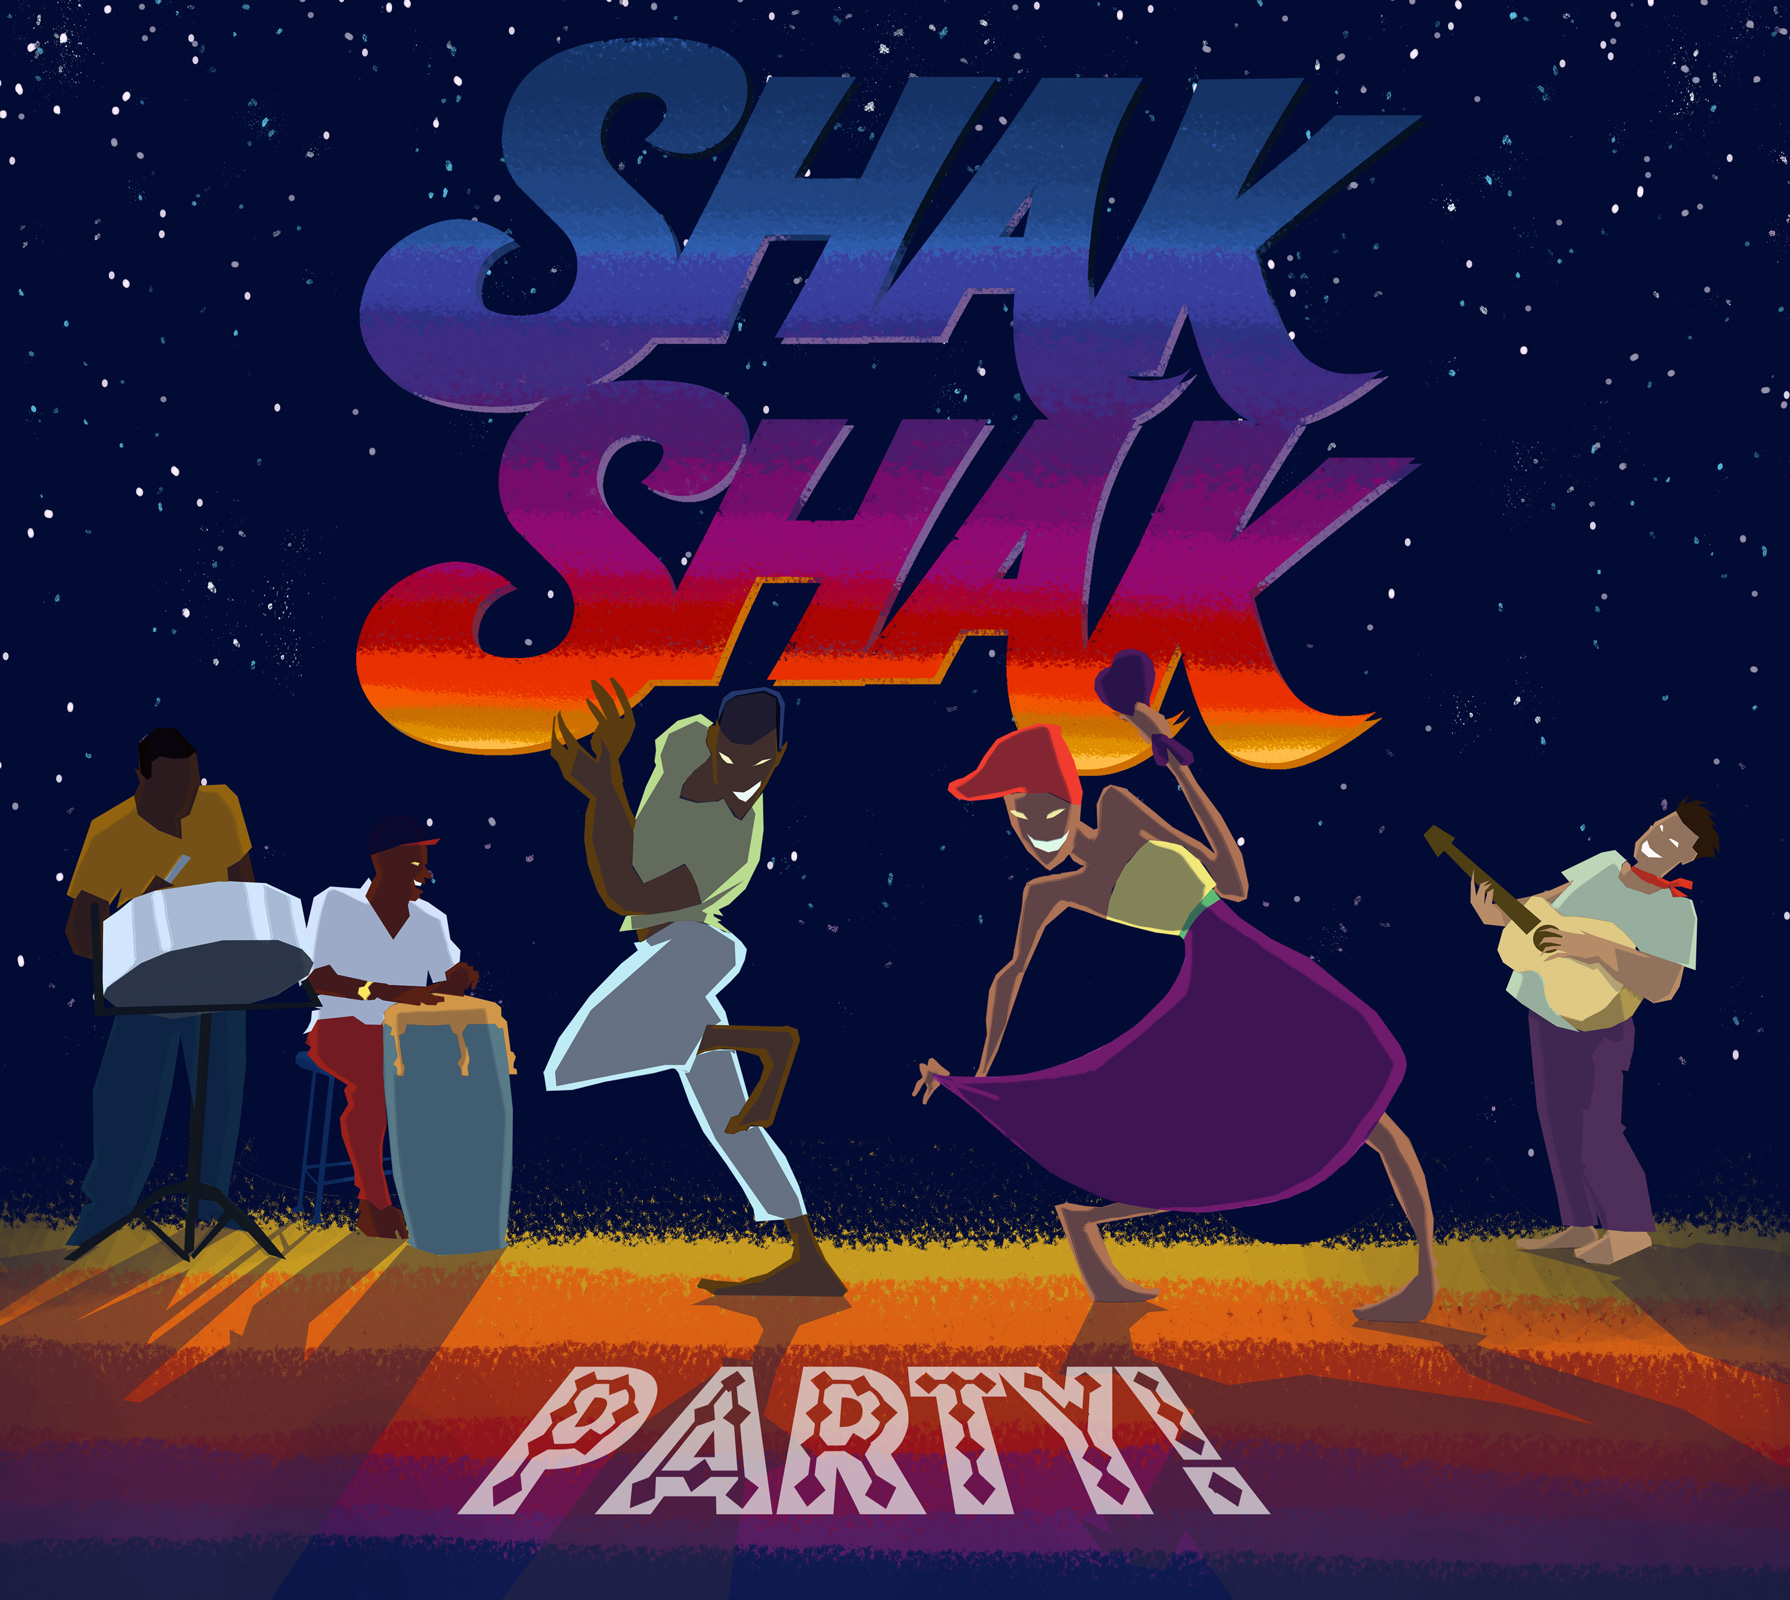 Shak-Shak-PARTY-CD-Cover-for-Tunecore - Copy